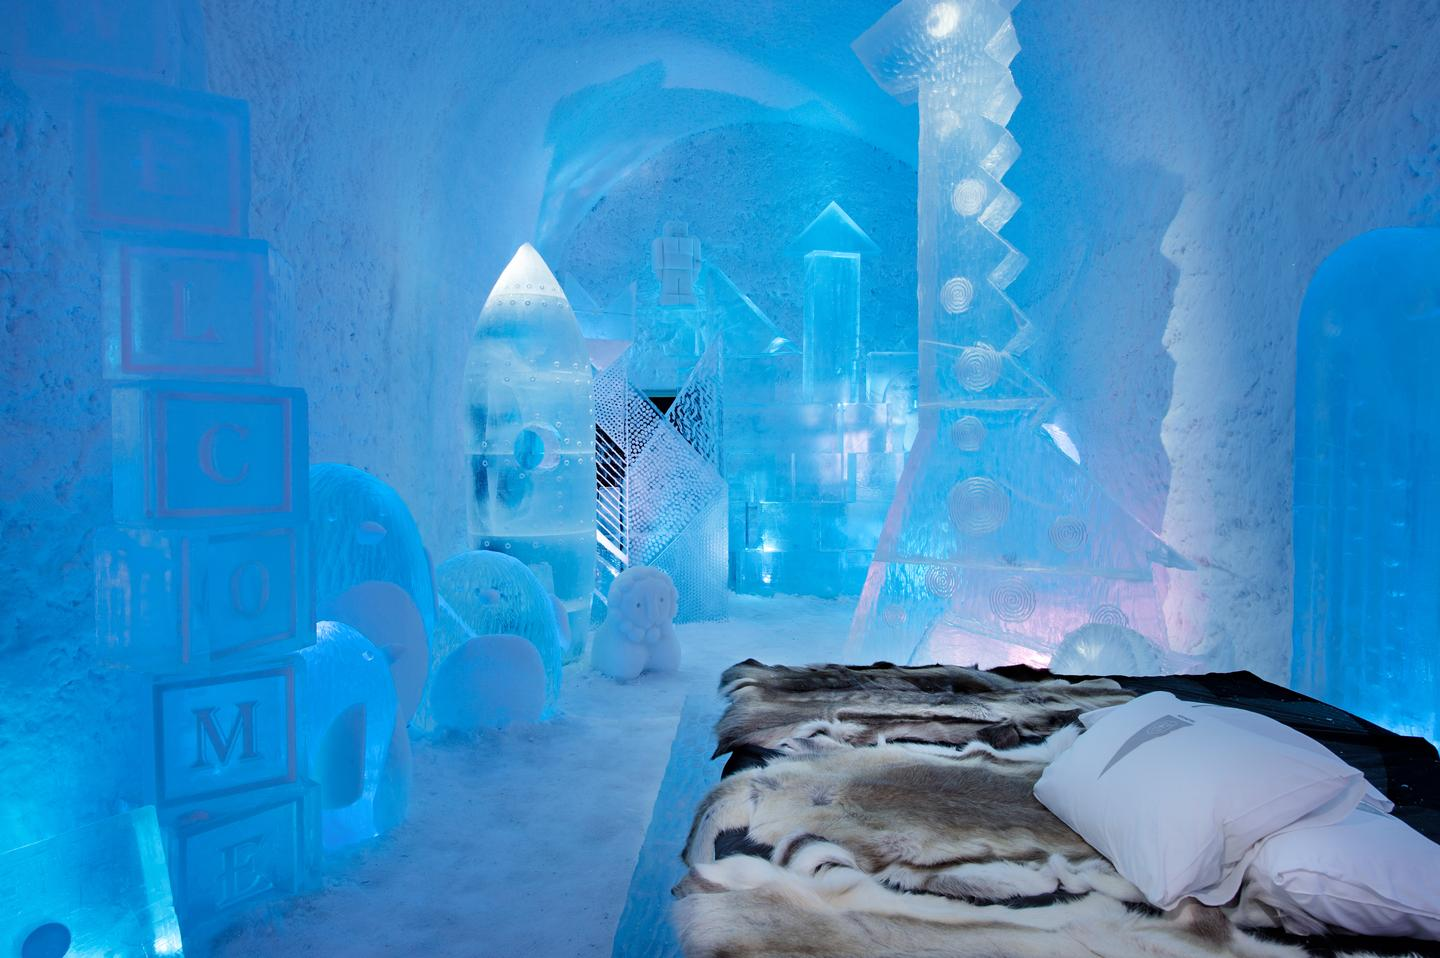 Toybox was designed by Wouter Biegelaar and Viktor Tsarsk. It contains ice sculptures of toys and stuffed animals